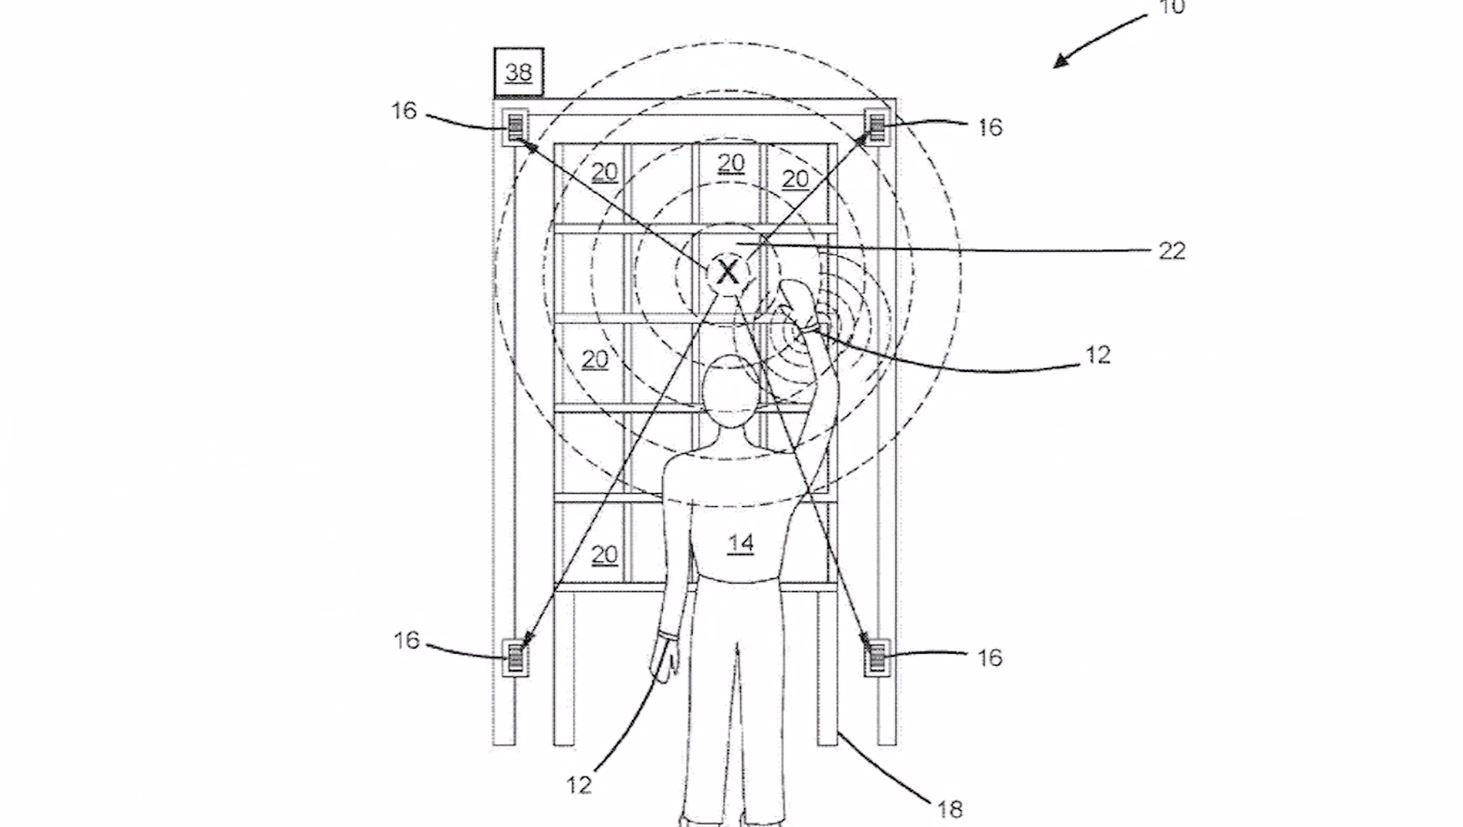 Amazon has patented a wristband capable of tracking employees' locations and movements. (CNN/Amazon/U.S. Patent and Trademark Office)